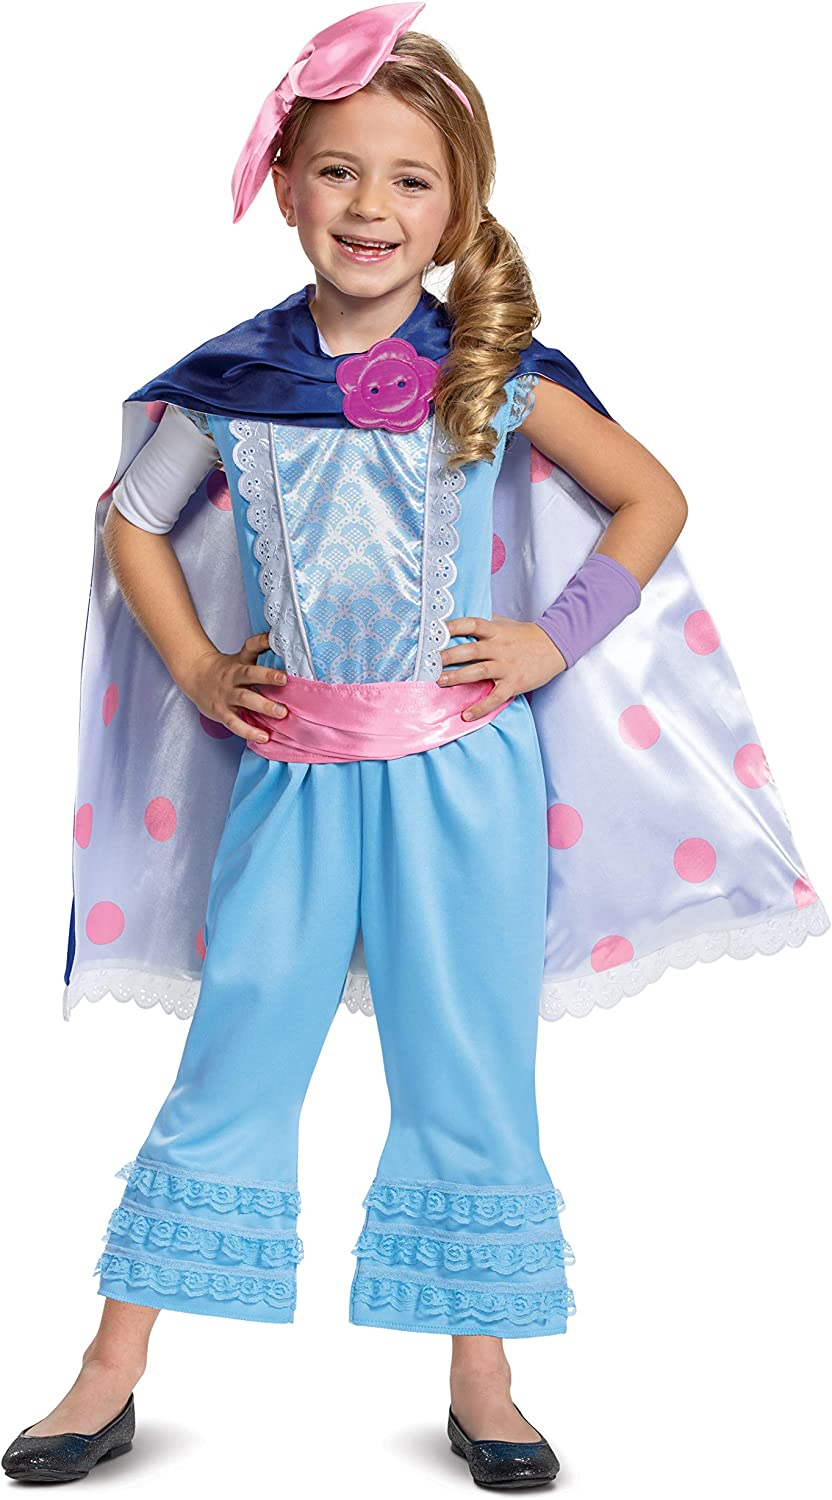 Disney Pixar Bo Peep Toy Story 4 Deluxe Girls Costume